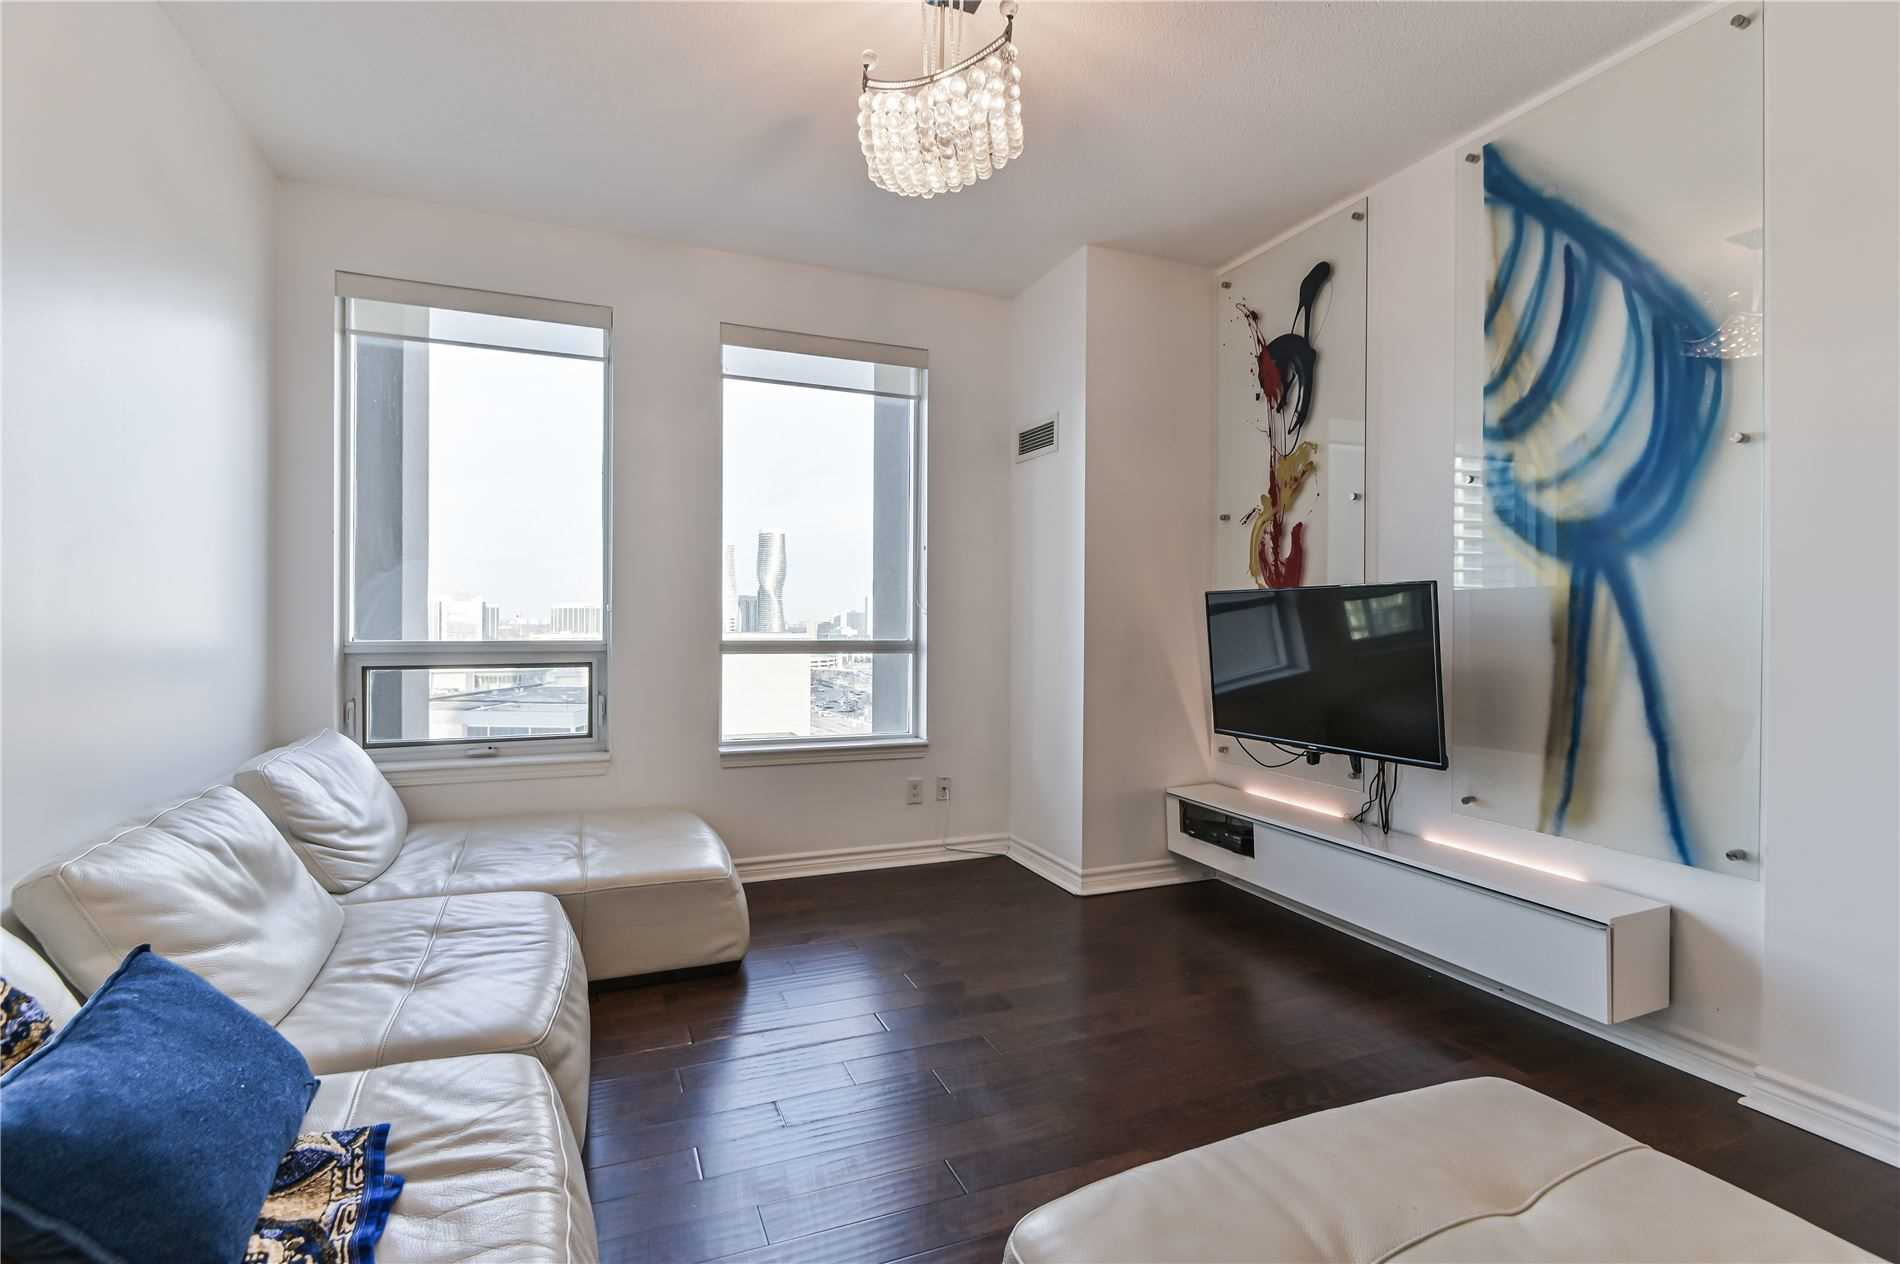 #1210 - 388 Prince Of Wales Dr, Mississauga W4663817